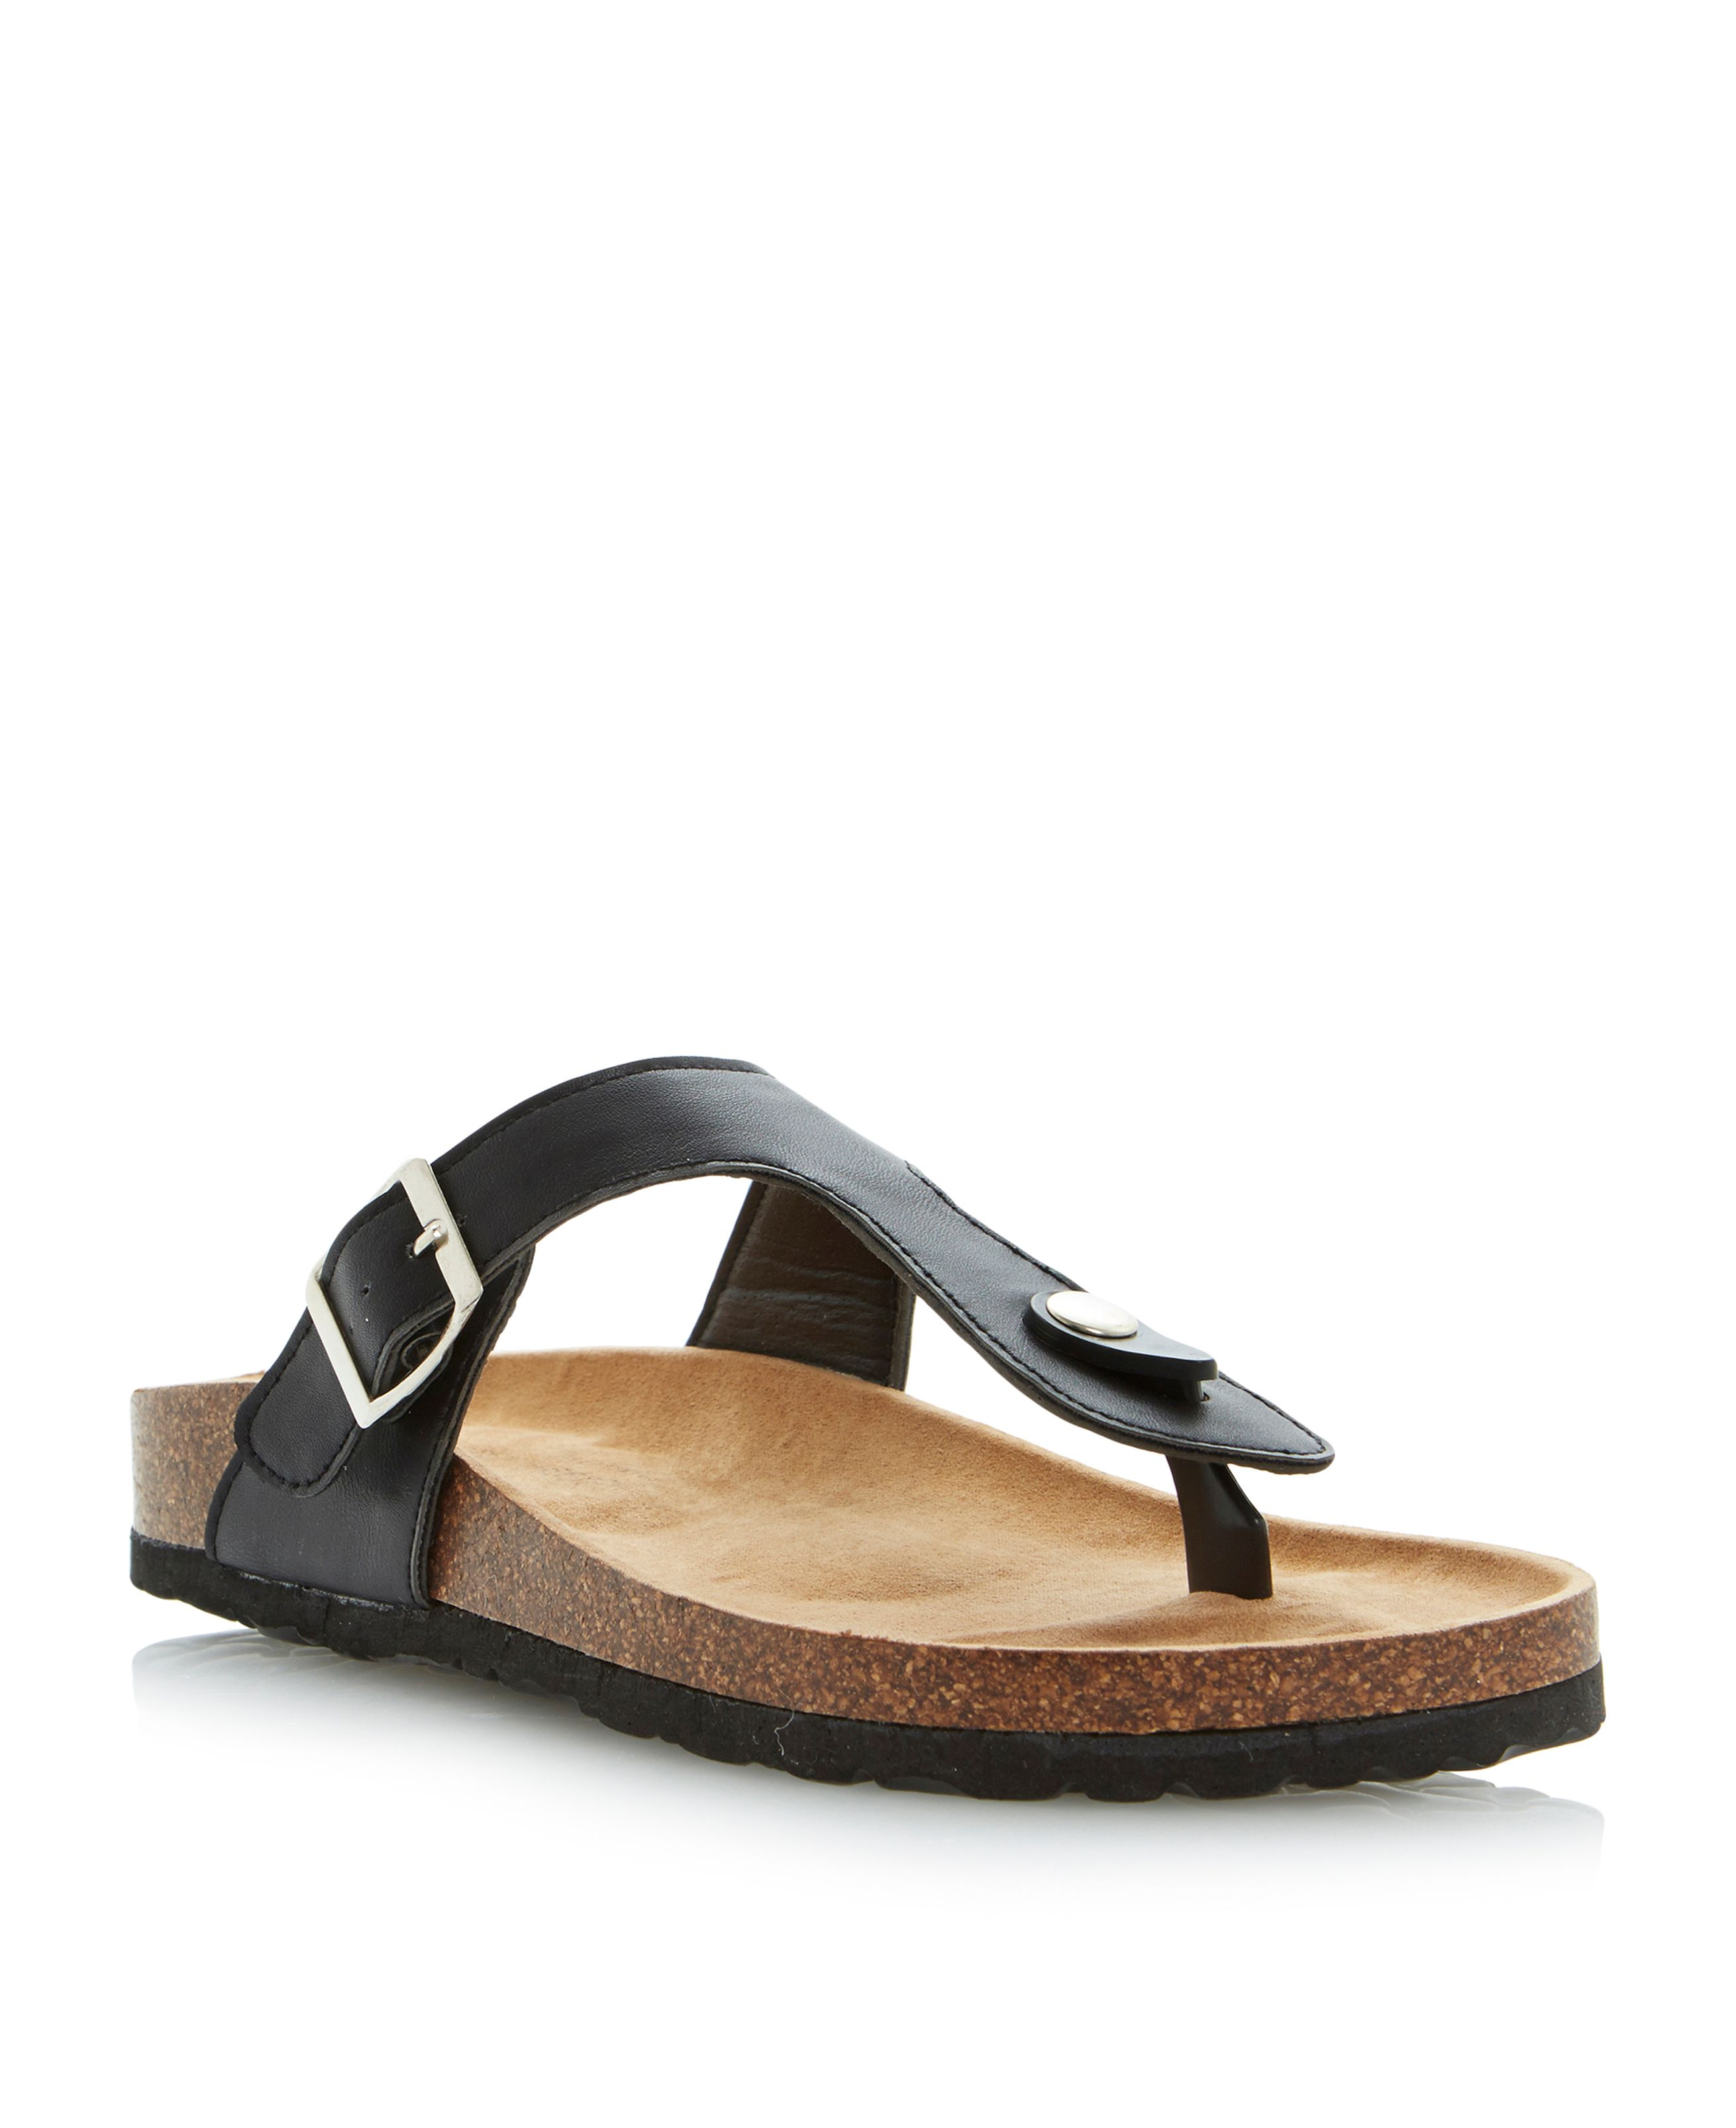 Jaimee footbed sandals